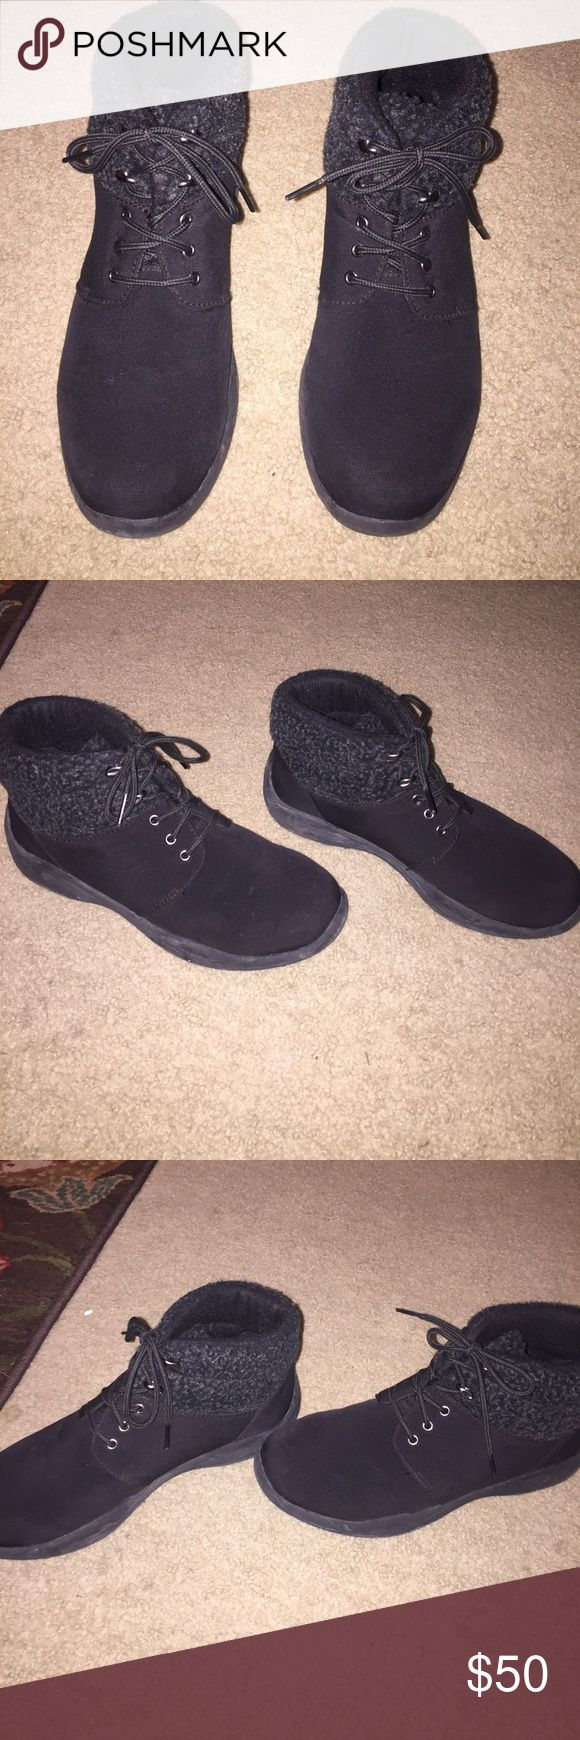 Propet ladies Madison boots. On Zappos for $79.99. Like new worn only twice. Propet Shoes Ankle Boots & Booties